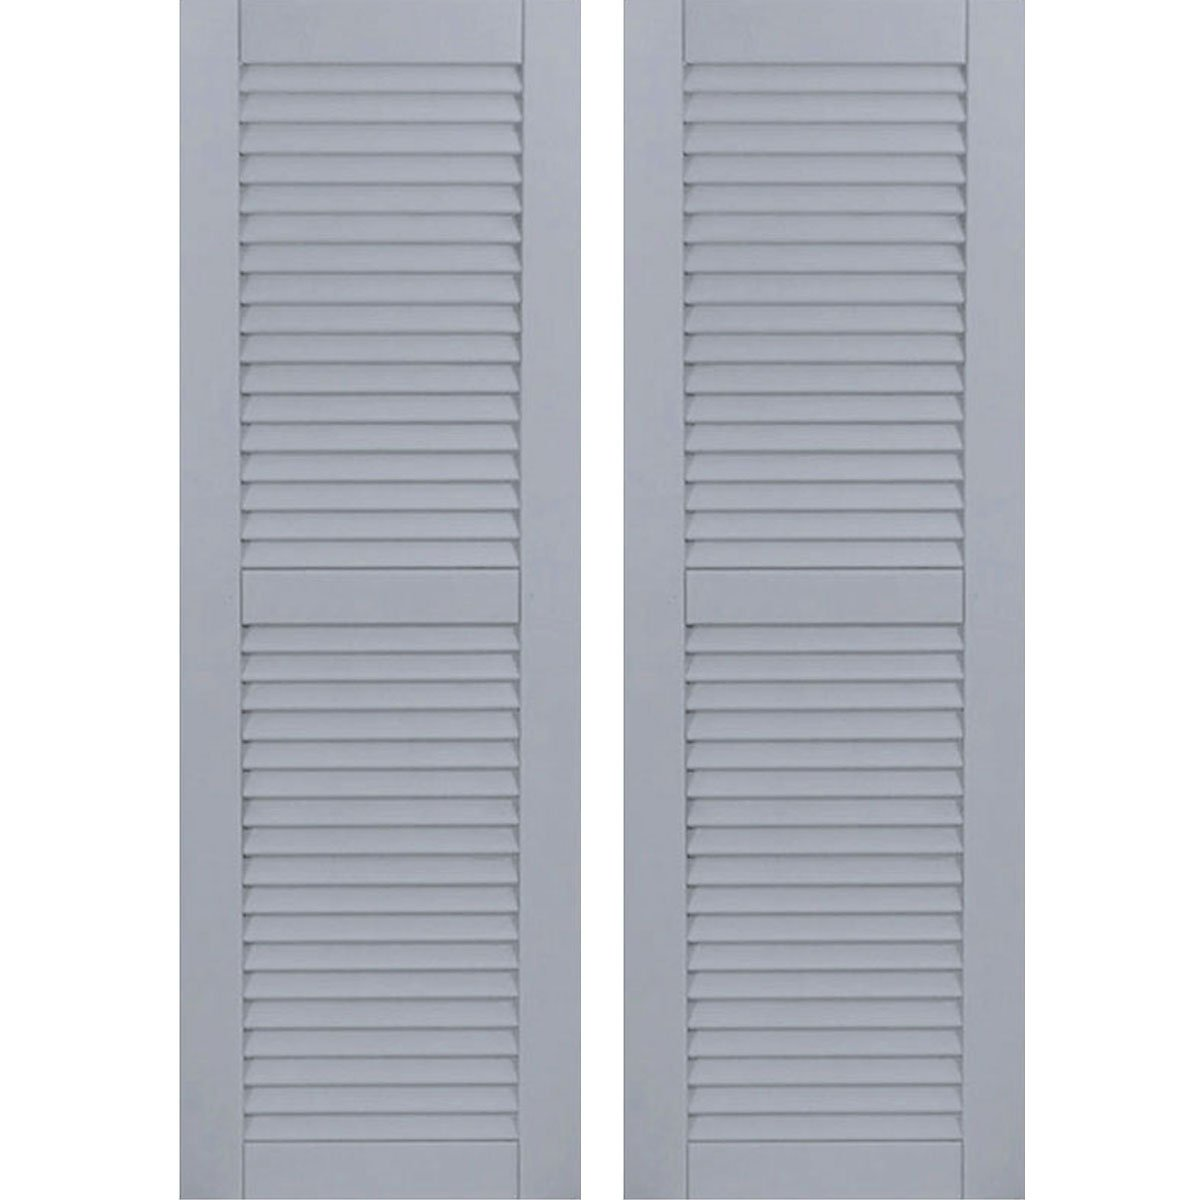 Ekena Millwork CWL15X067UNC Exterior Composite Wood Louvered Shutters with Installation Brackets (Per Pair), Unfinished, 15''W x 67''H by Ekena Millwork